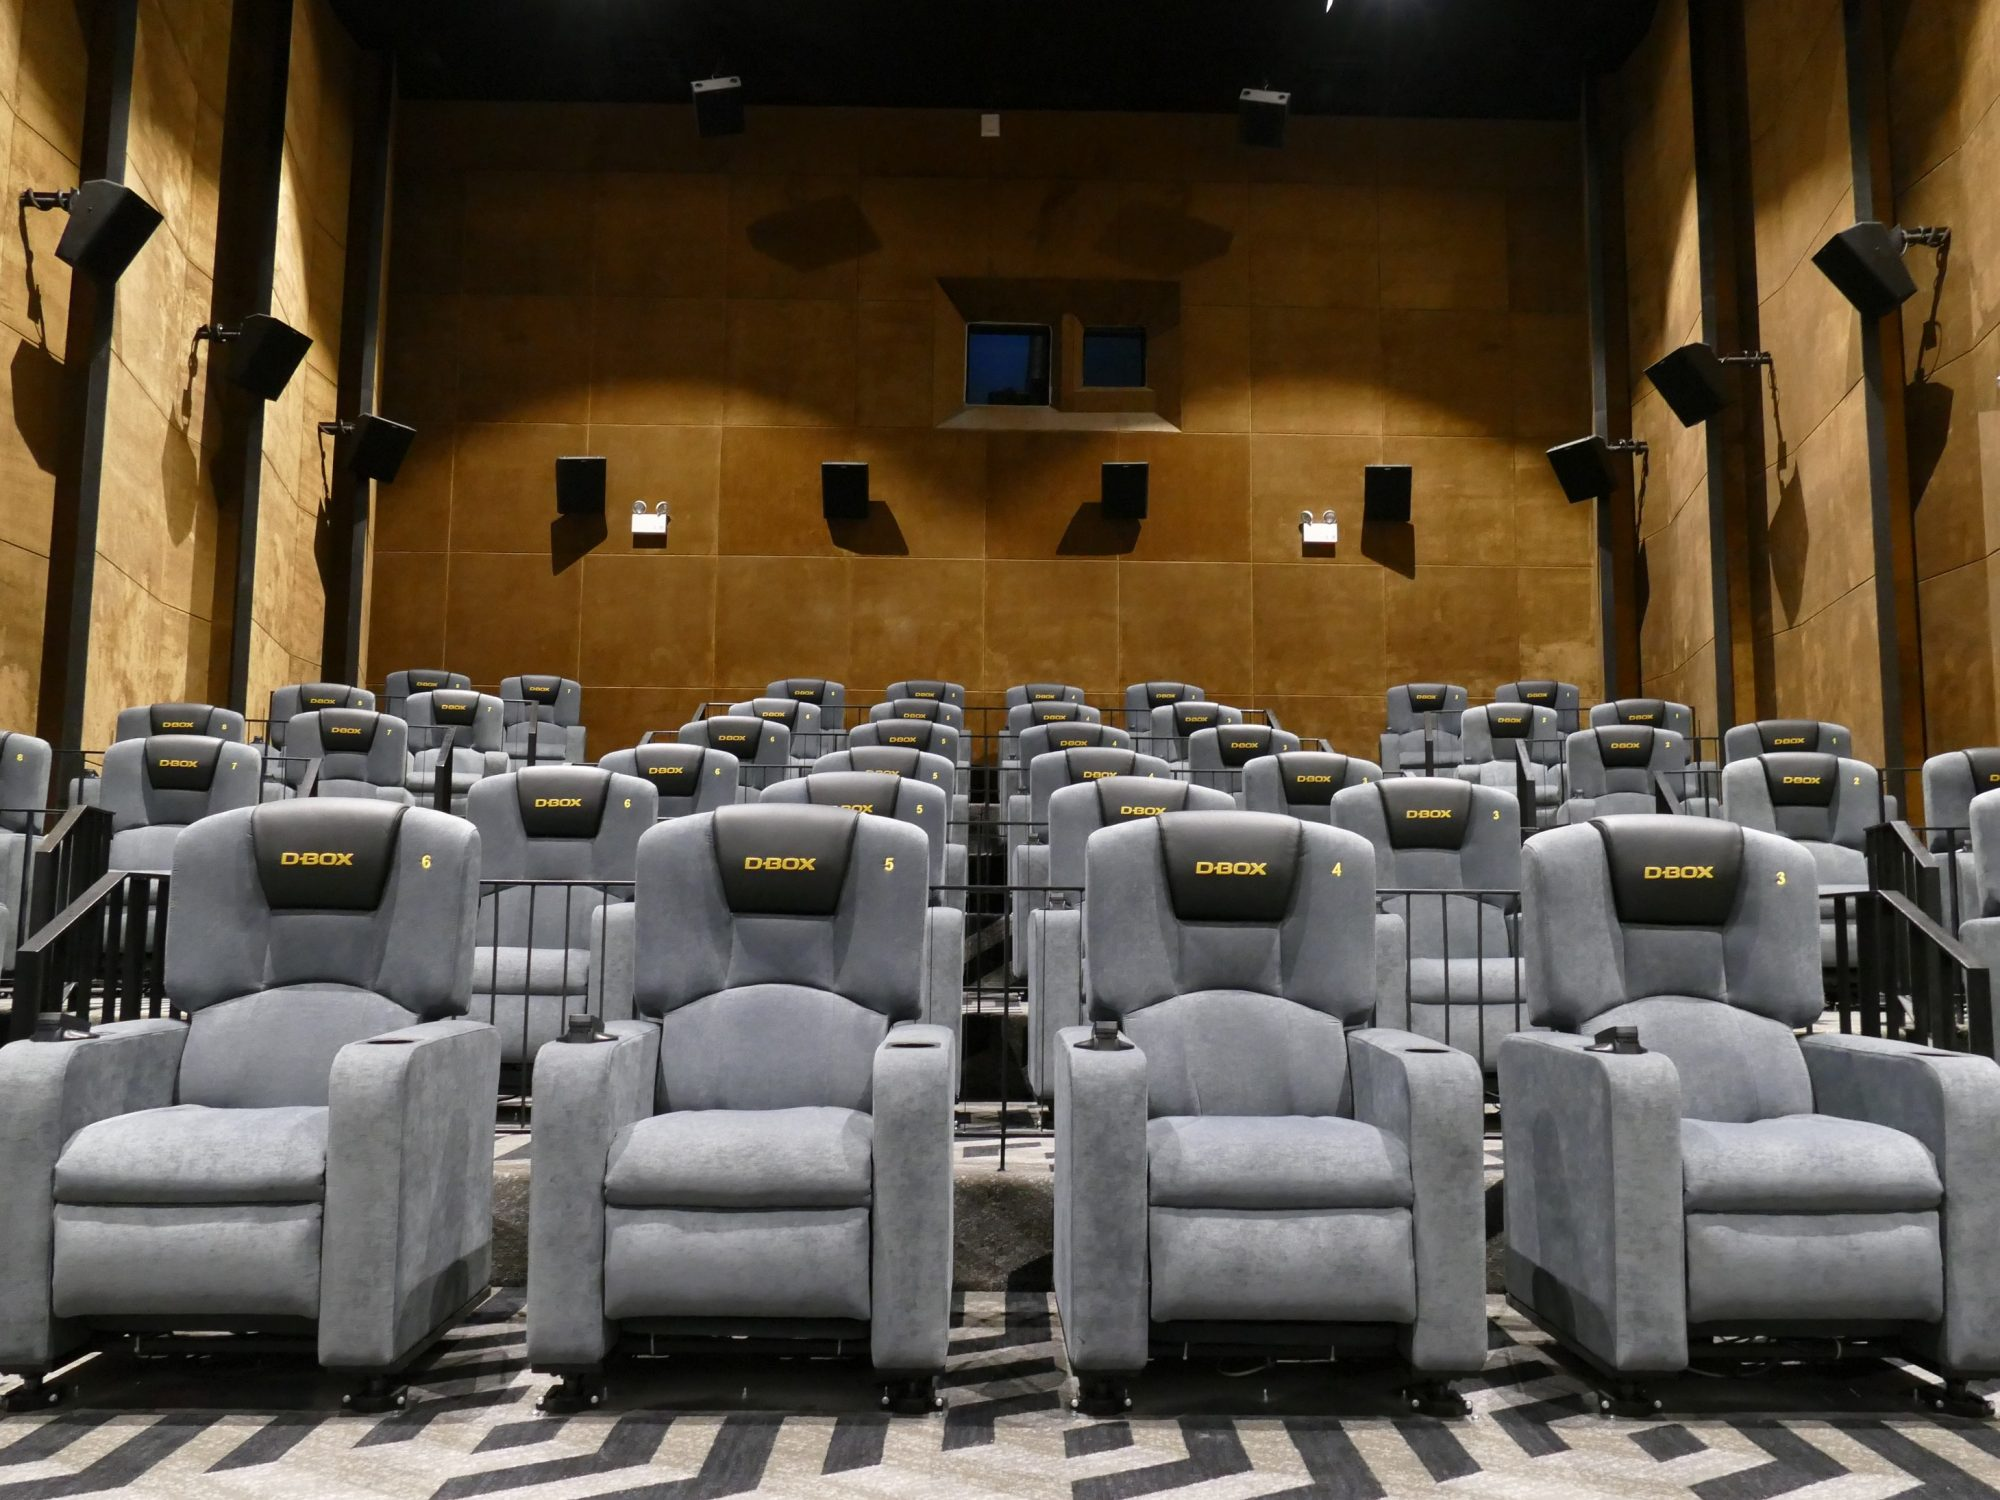 The interior of the Gold Class with D-BOX hall at Bona Cinemas